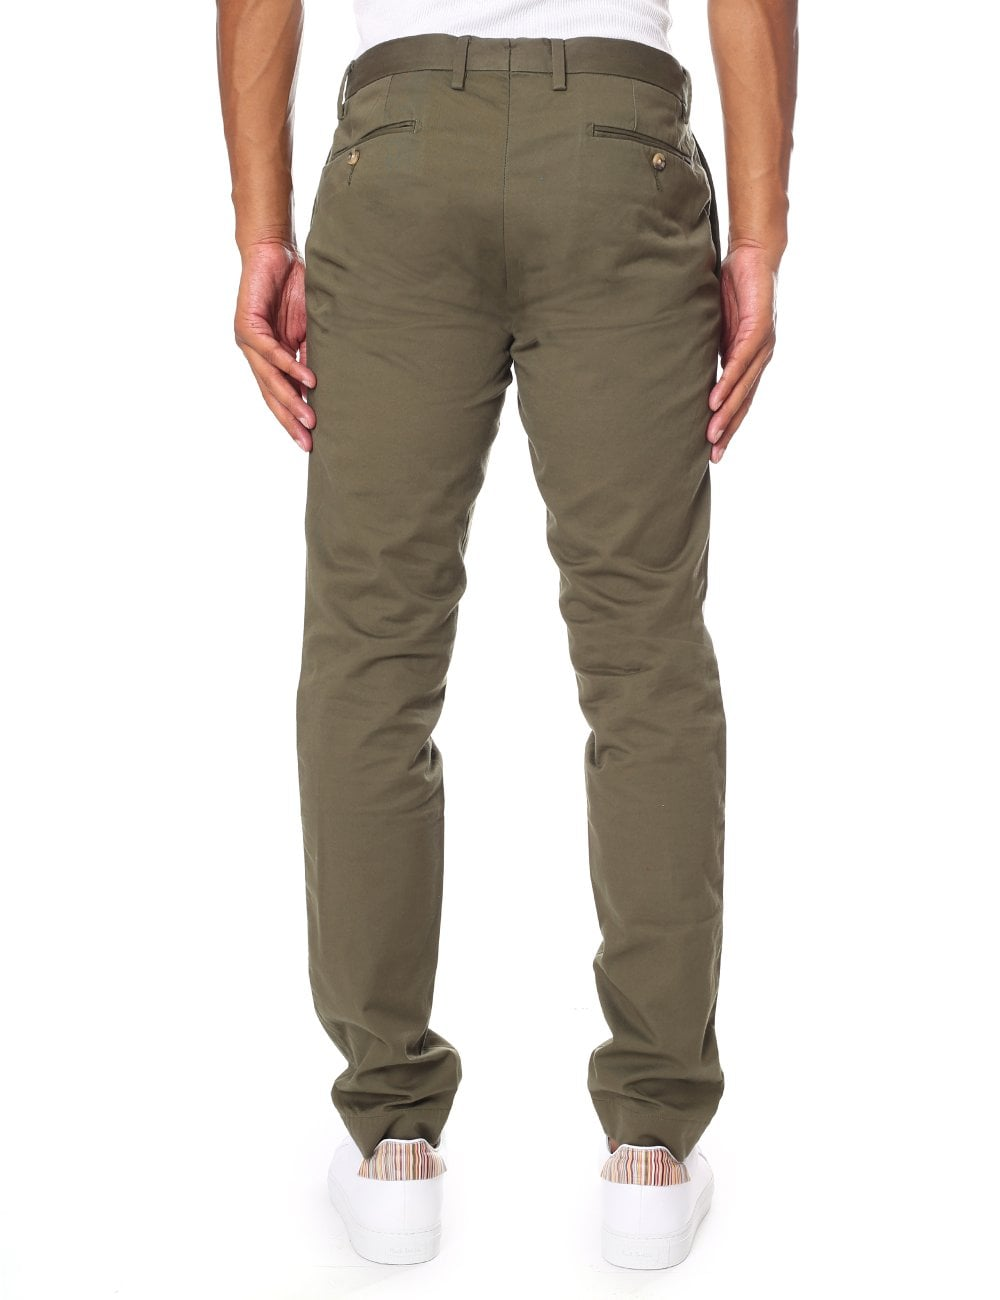 exquisite craftsmanship purchase authentic running shoes Polo Ralph Lauren Men's Tailored Slim Fit Pant